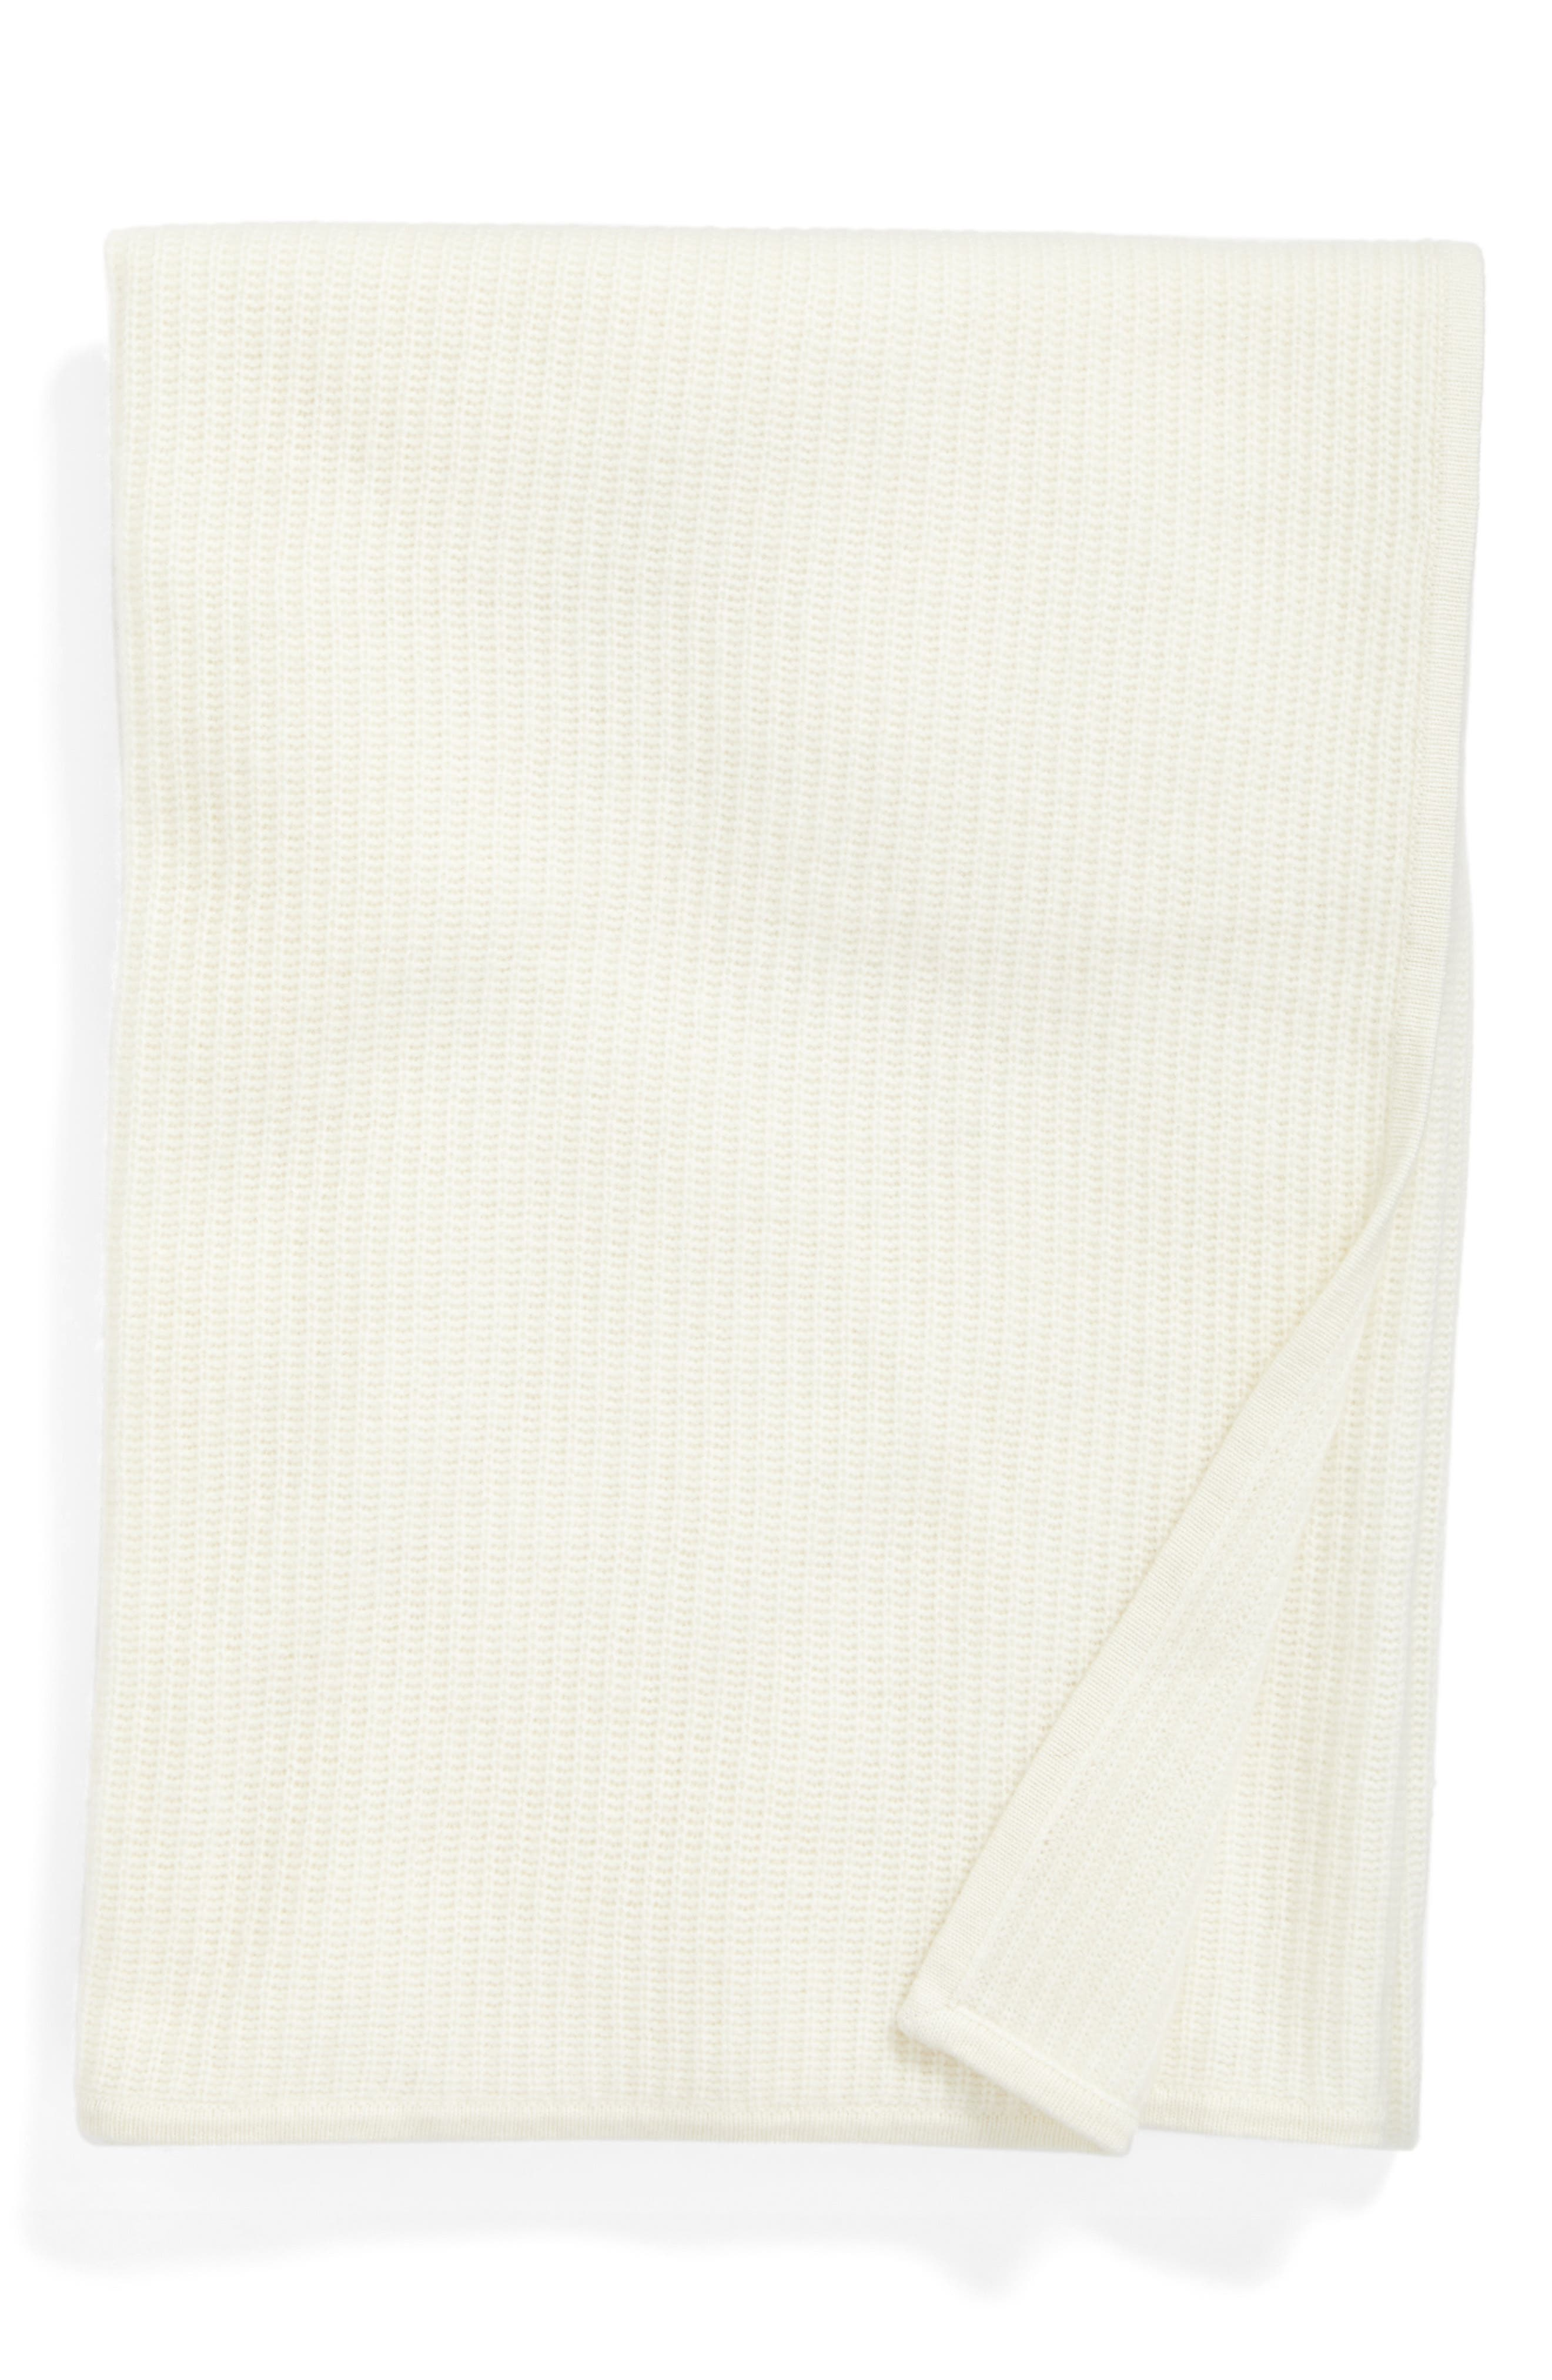 Nordstrom at Home Lattice Cashmere Throw Blanket